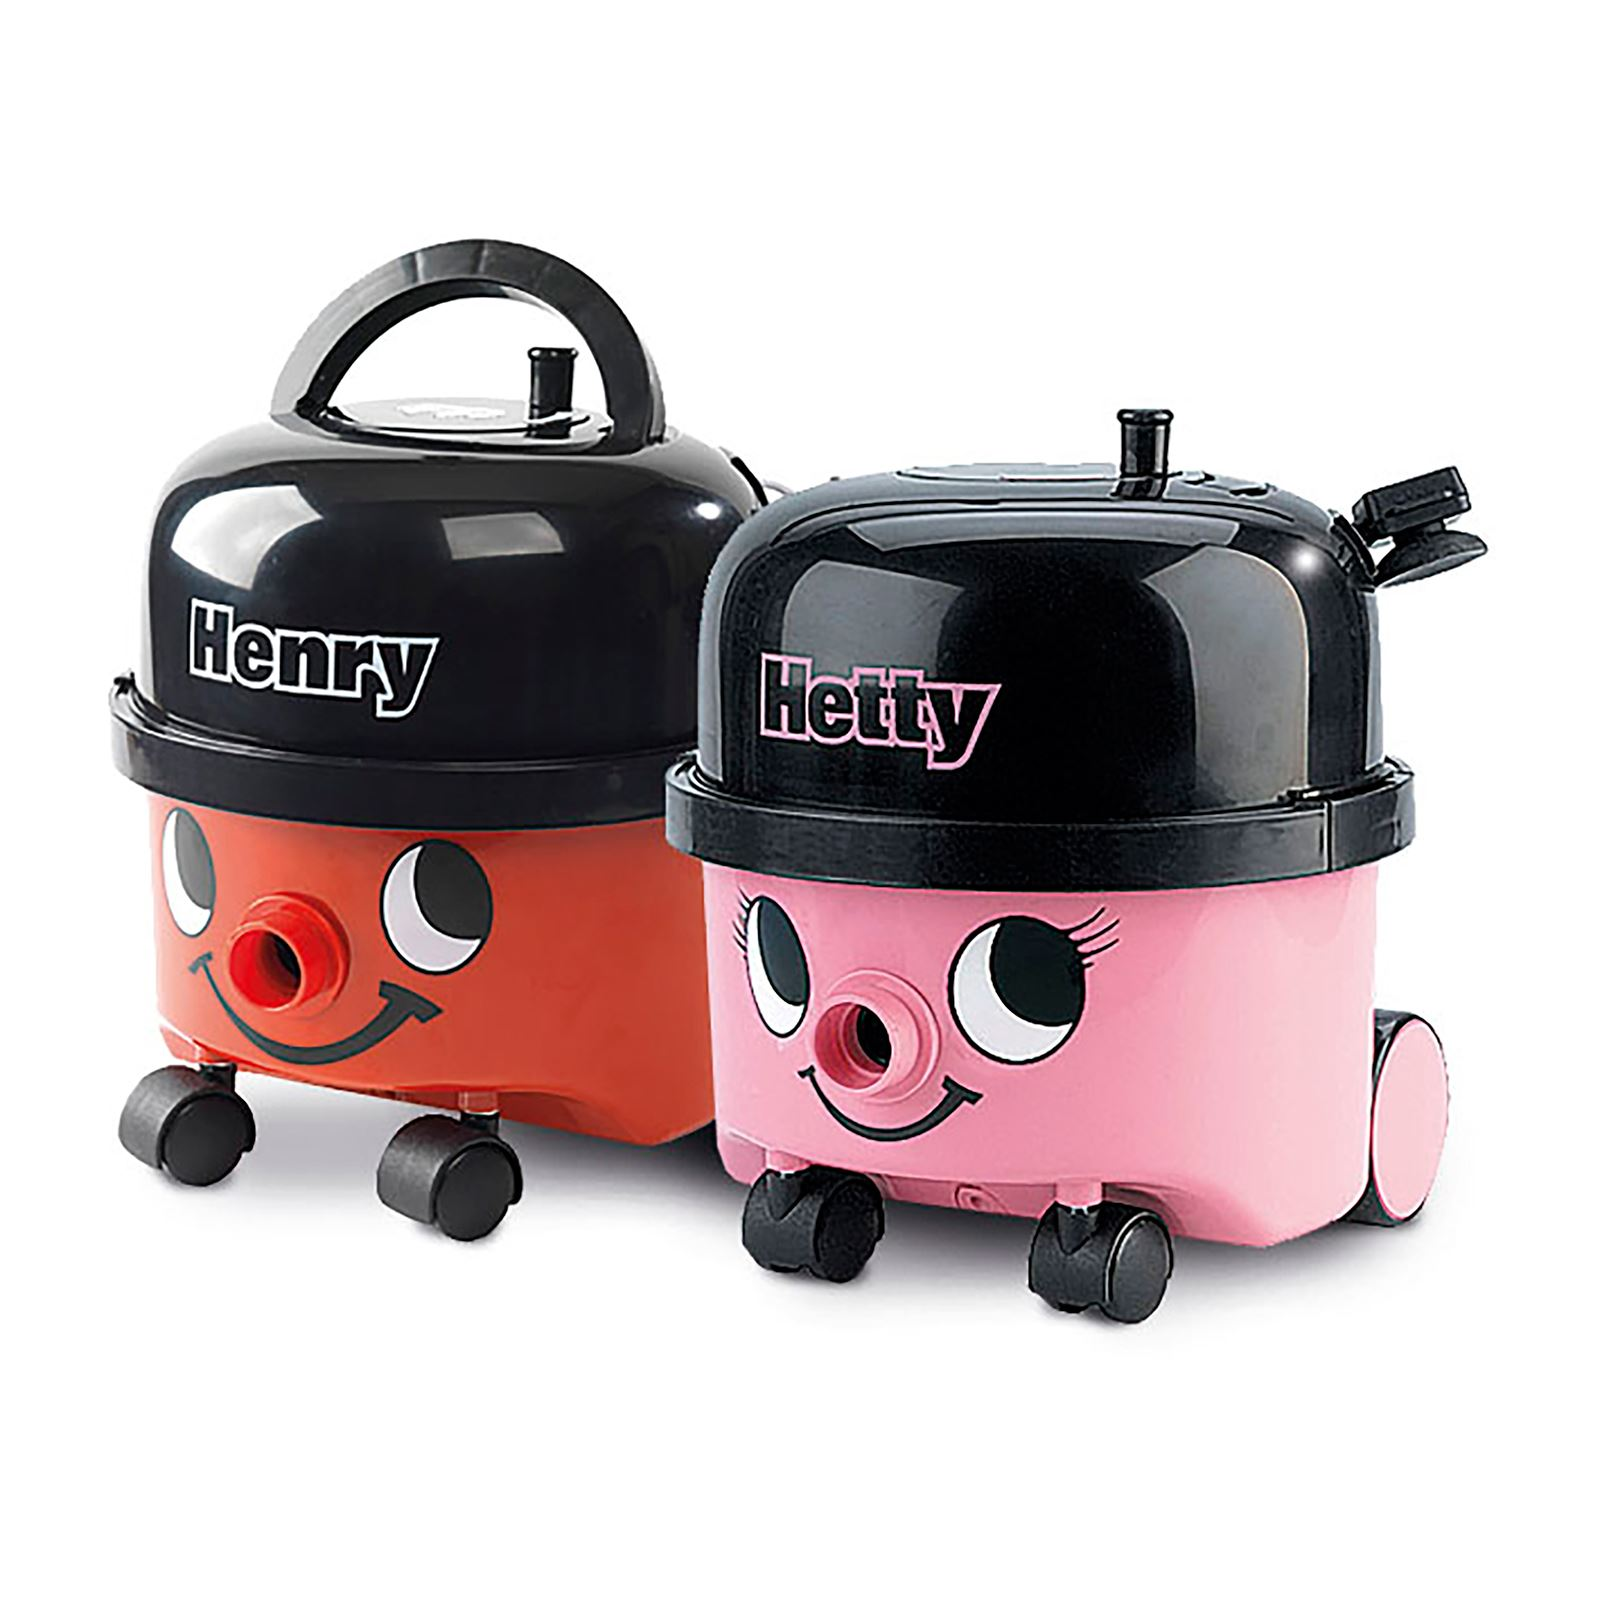 Indexbild 21 - KIDS VACUUM CLEANERS - LITTLE HENRY HETTY DYSON - KIDS CHILDRENS ROLE PLAY